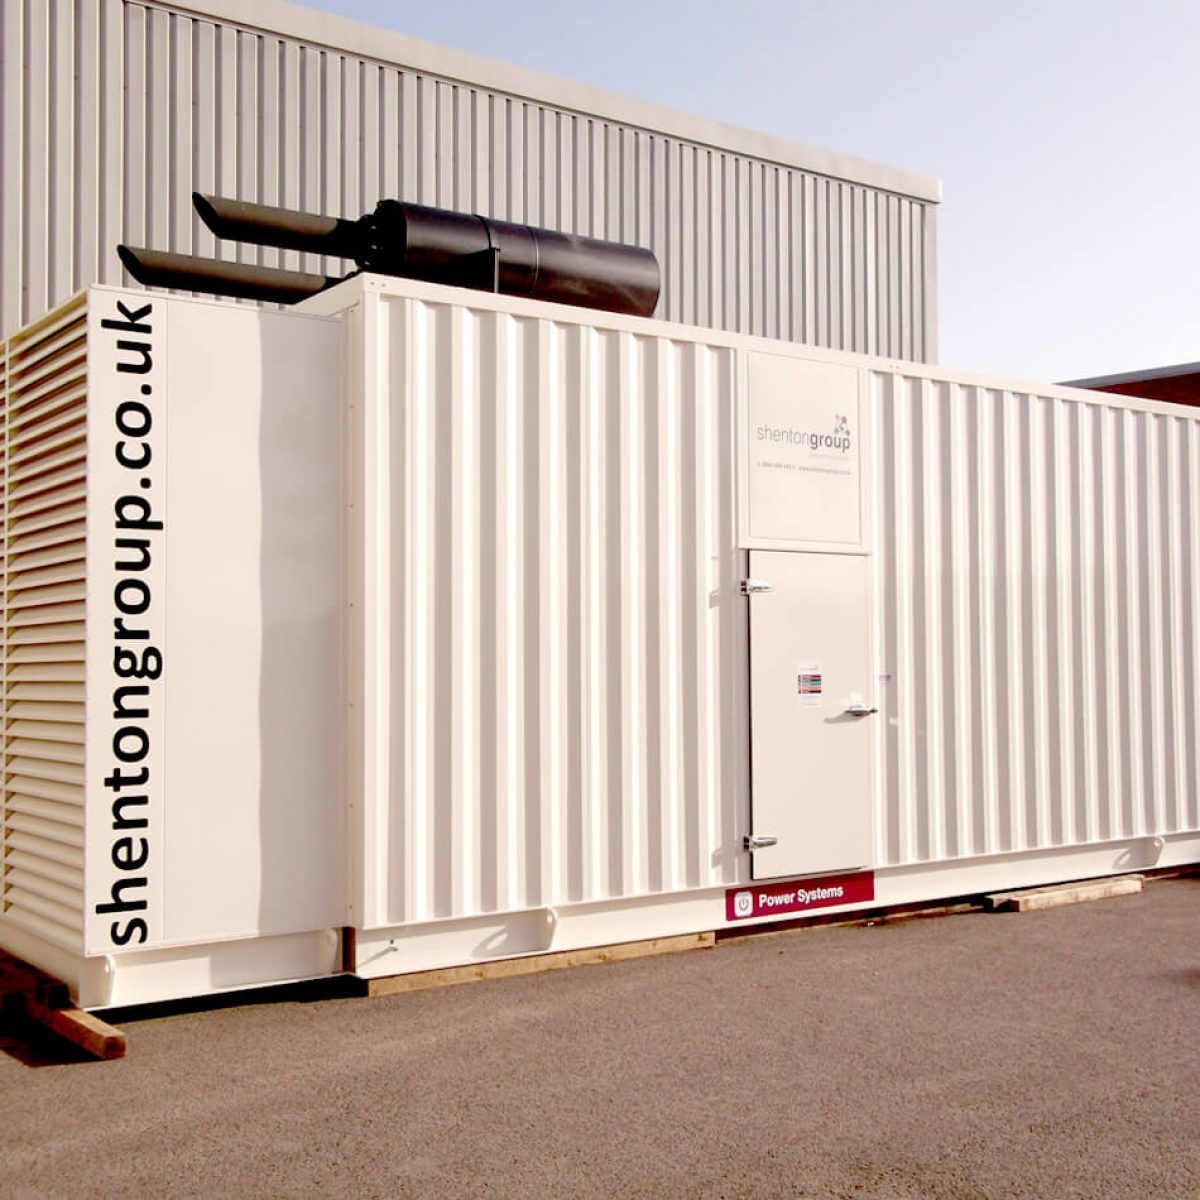 Generator Install Provides Standby Power System for Building Infrastructure and Data Centre